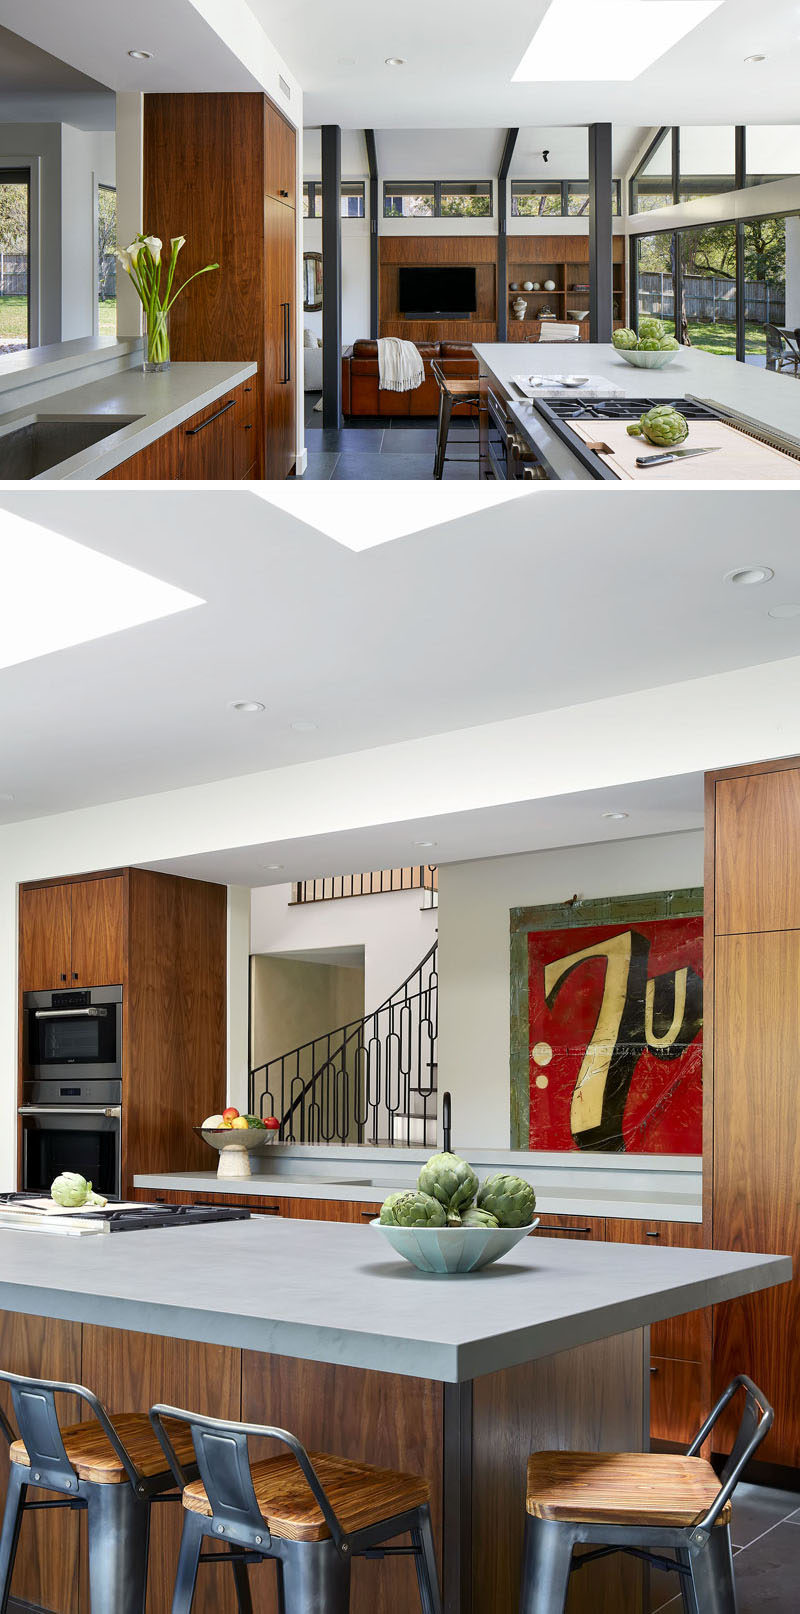 Skylights have been included in the design of this kitchen, helping to keep the space bright. #KitchenDesign